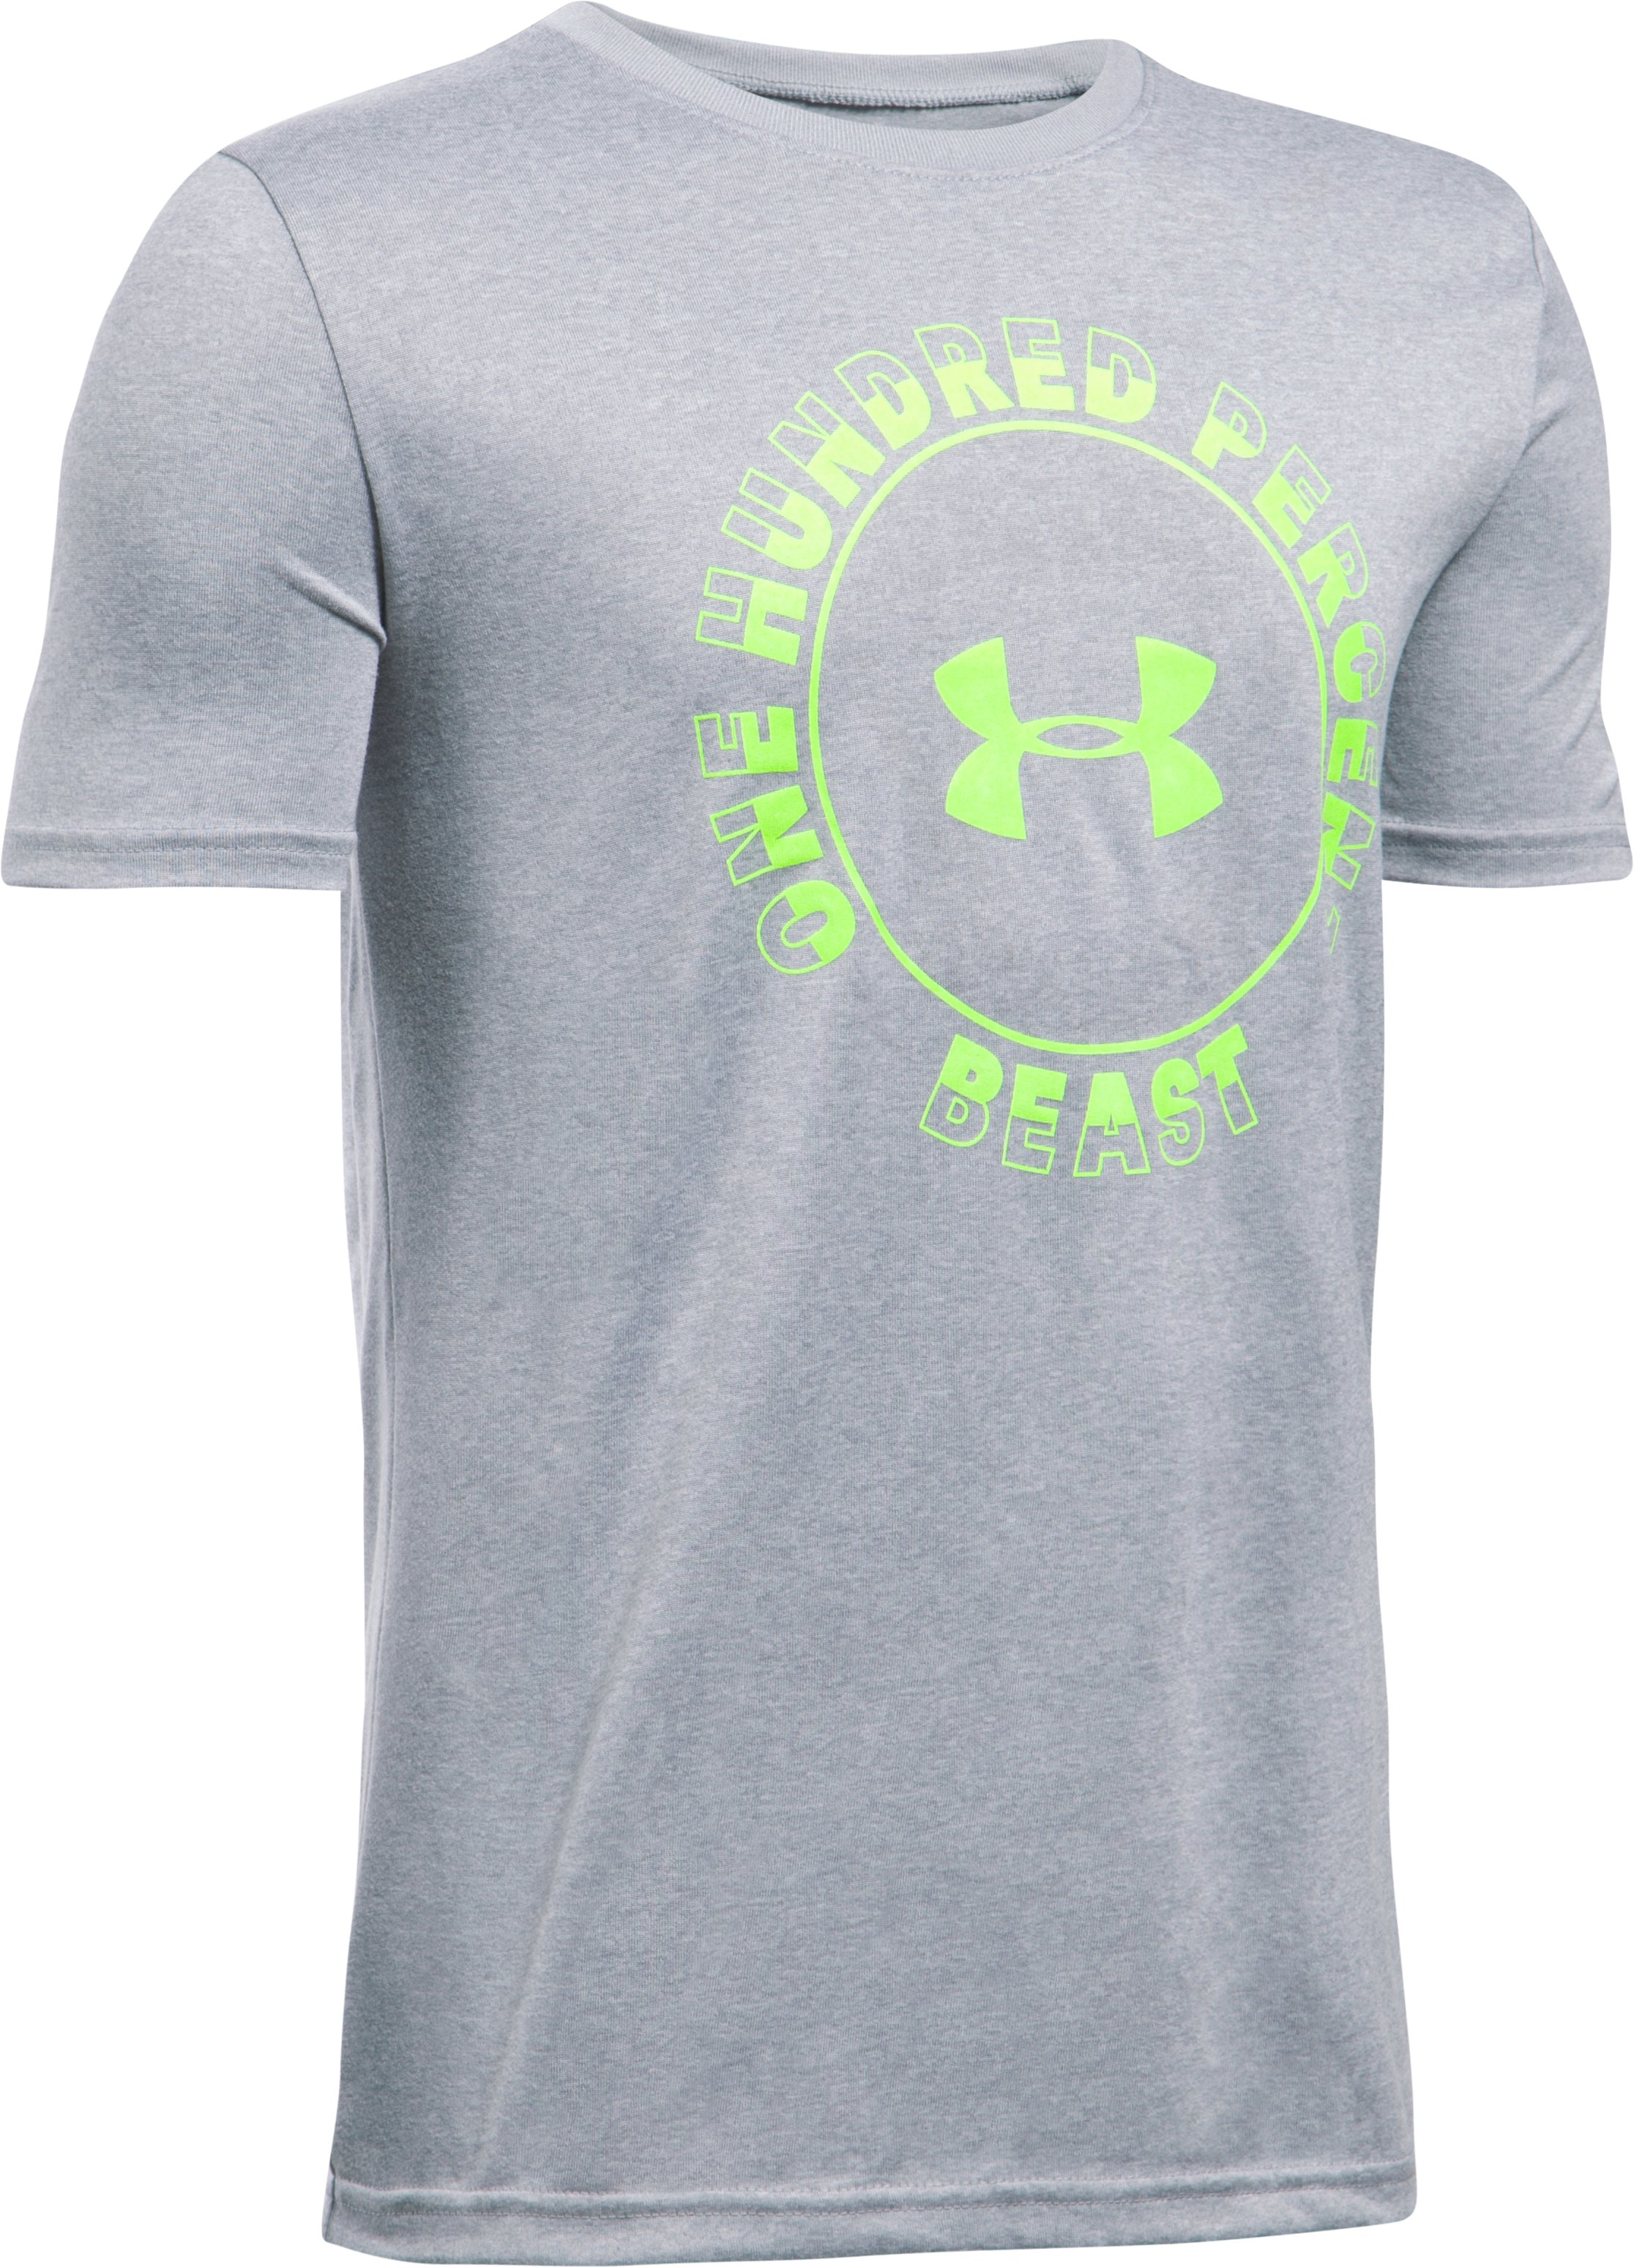 Boys' UA Beast Within T-Shirt, True Gray Heather, undefined